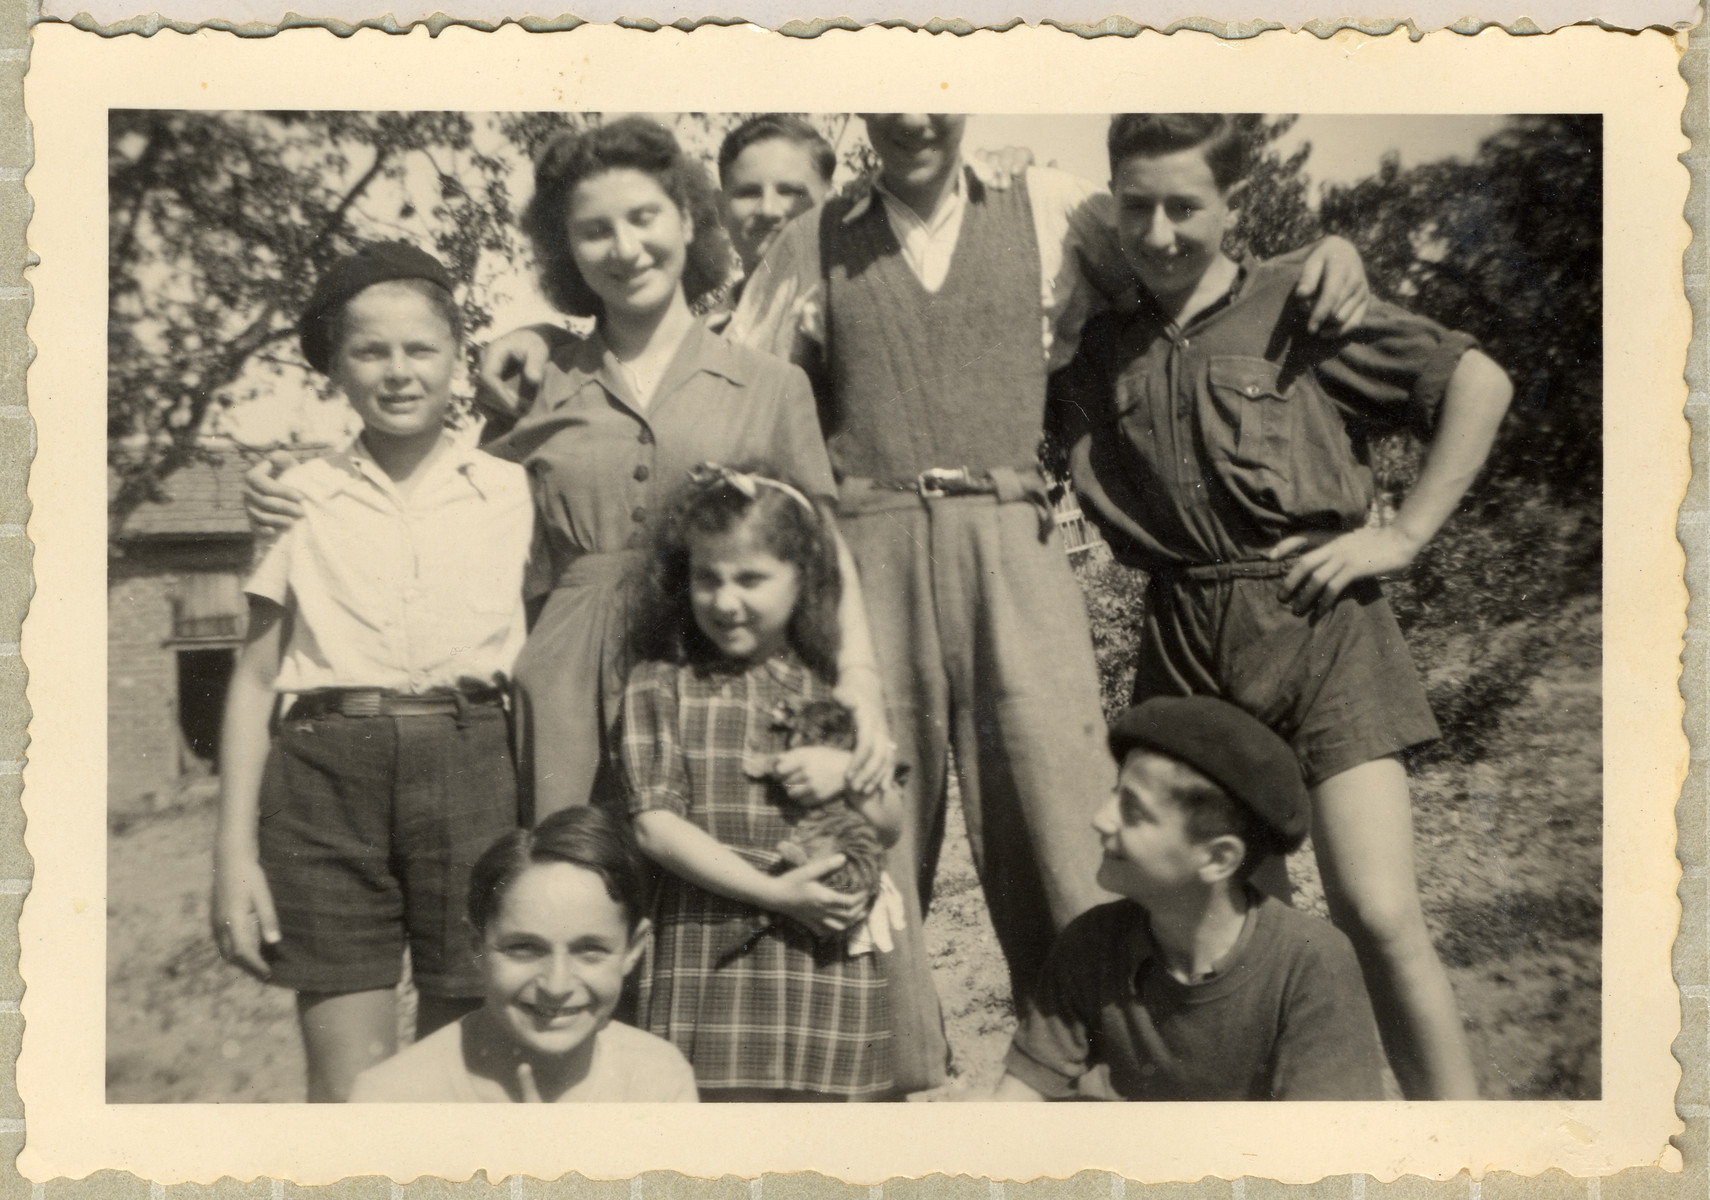 Group portrait of Jewish children in the OSE home, Poulouzat.